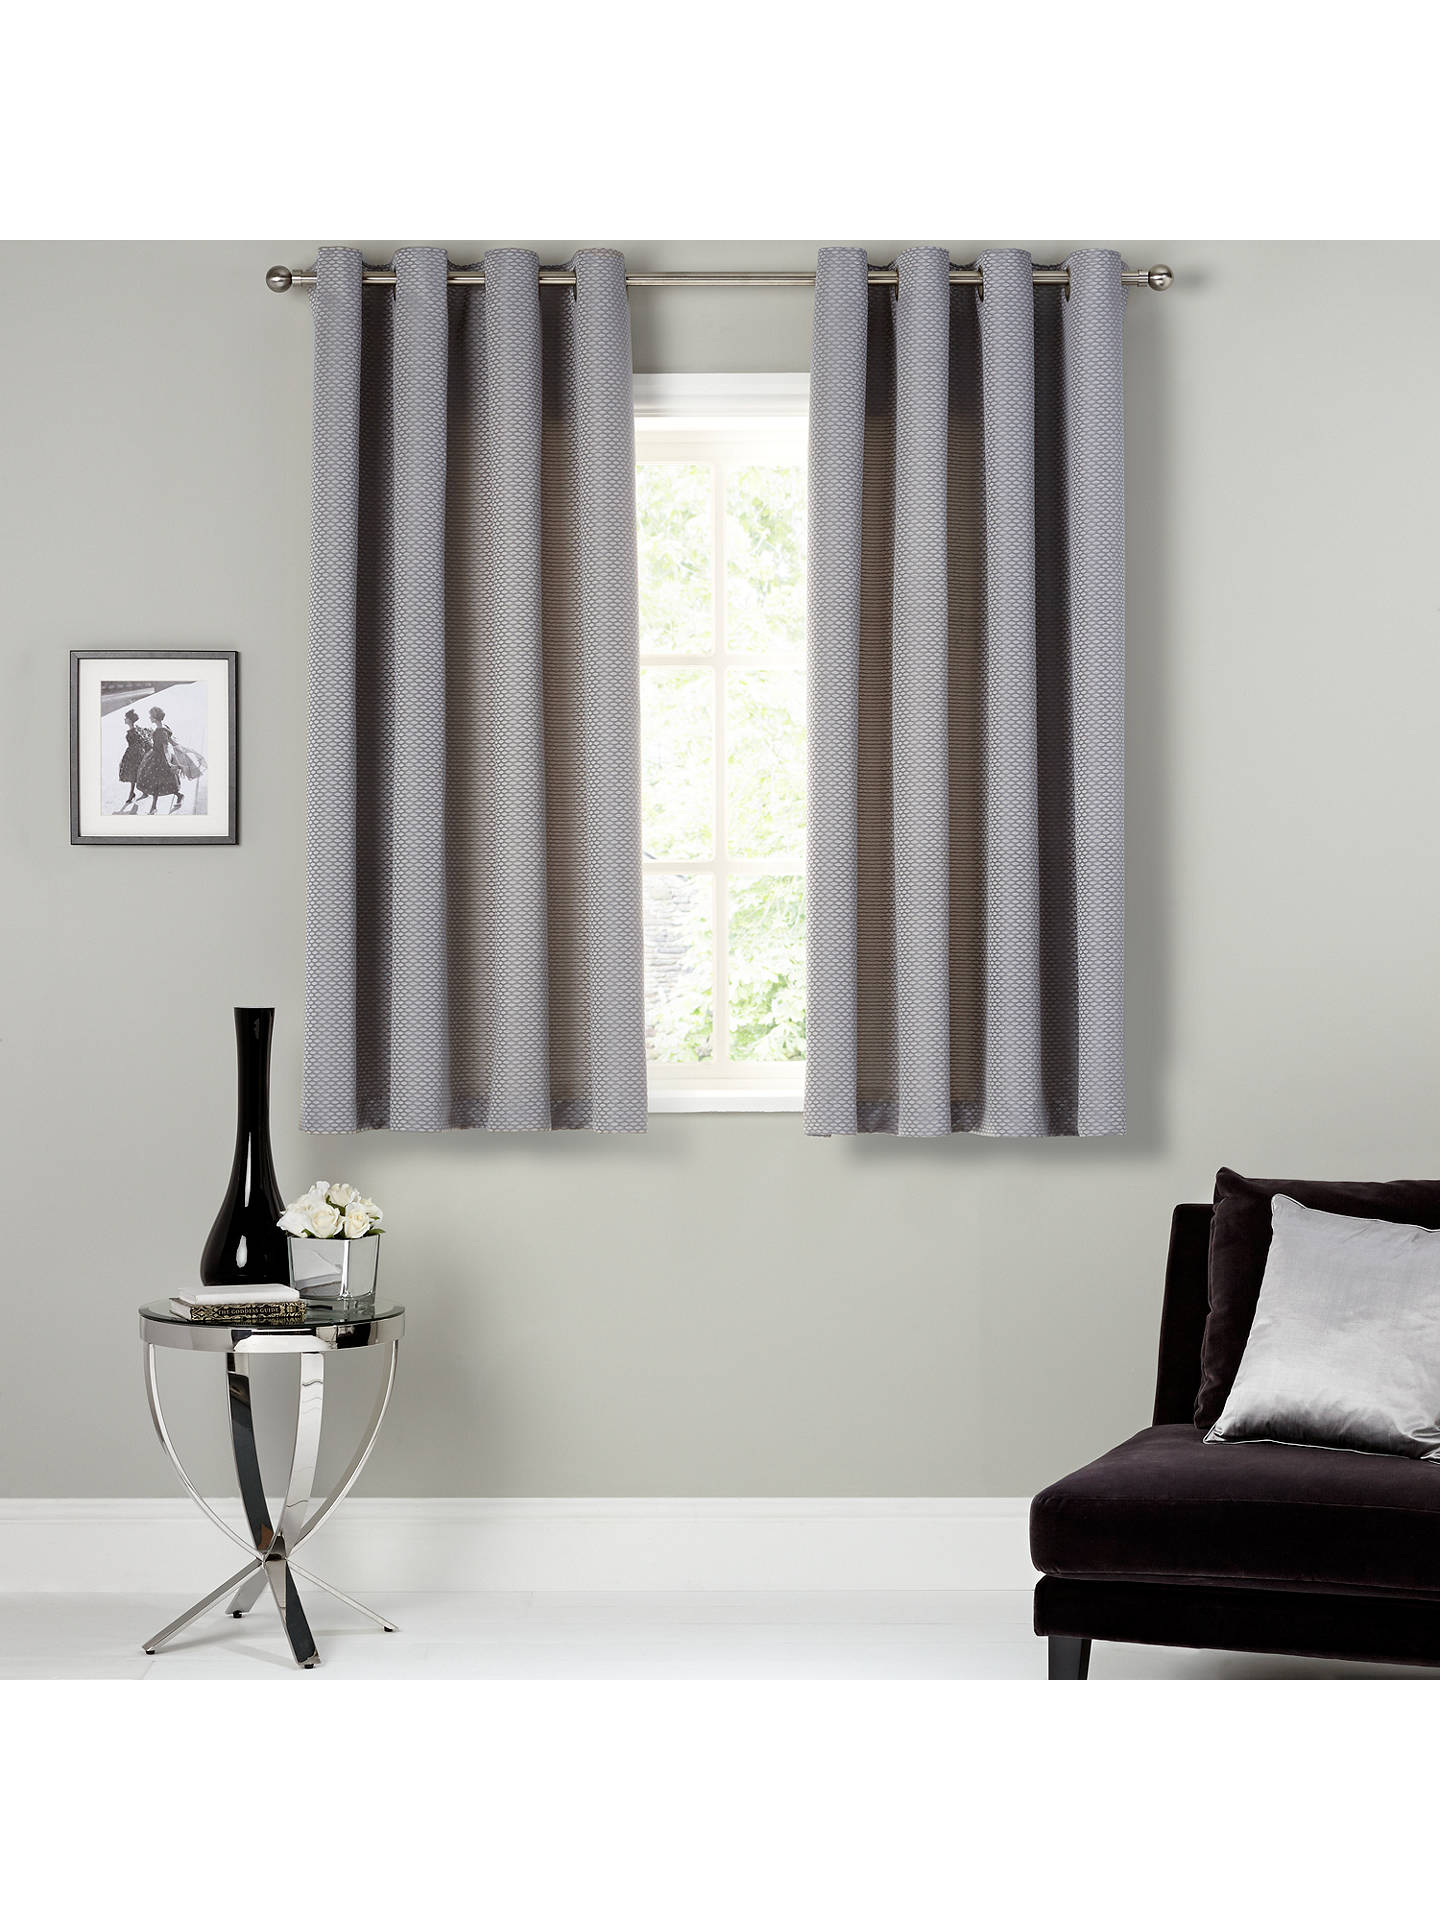 BuyJohn Lewis & Partners Contour Pair Lined Eyelet Curtains, Blue / Grey, W228 x Drop 137cm Online at johnlewis.com